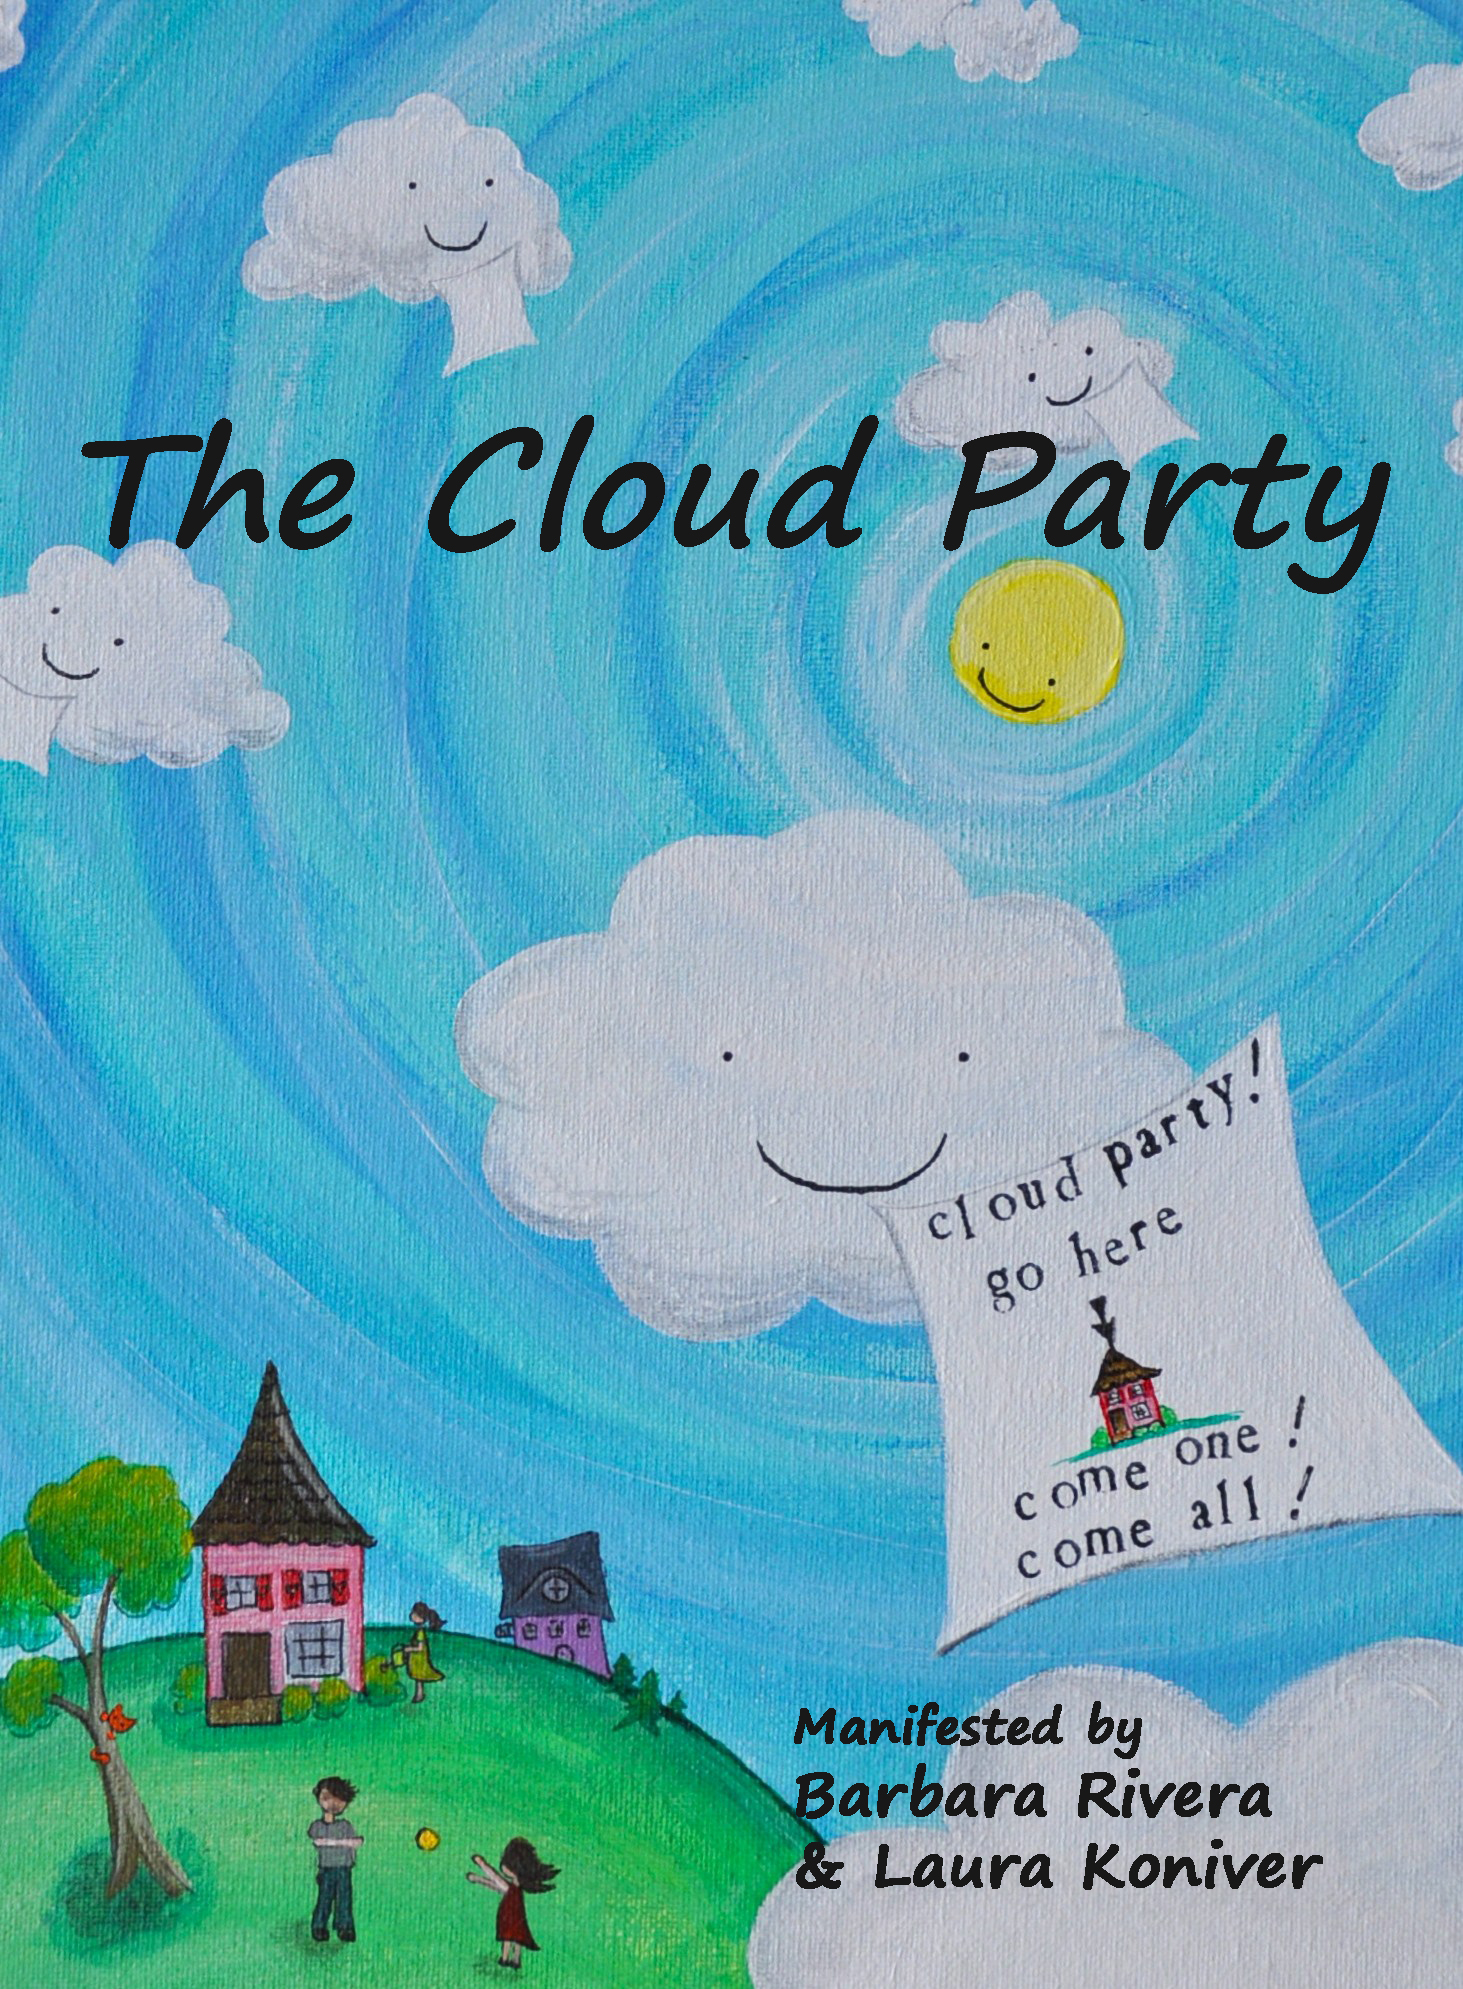 The Cloud Party